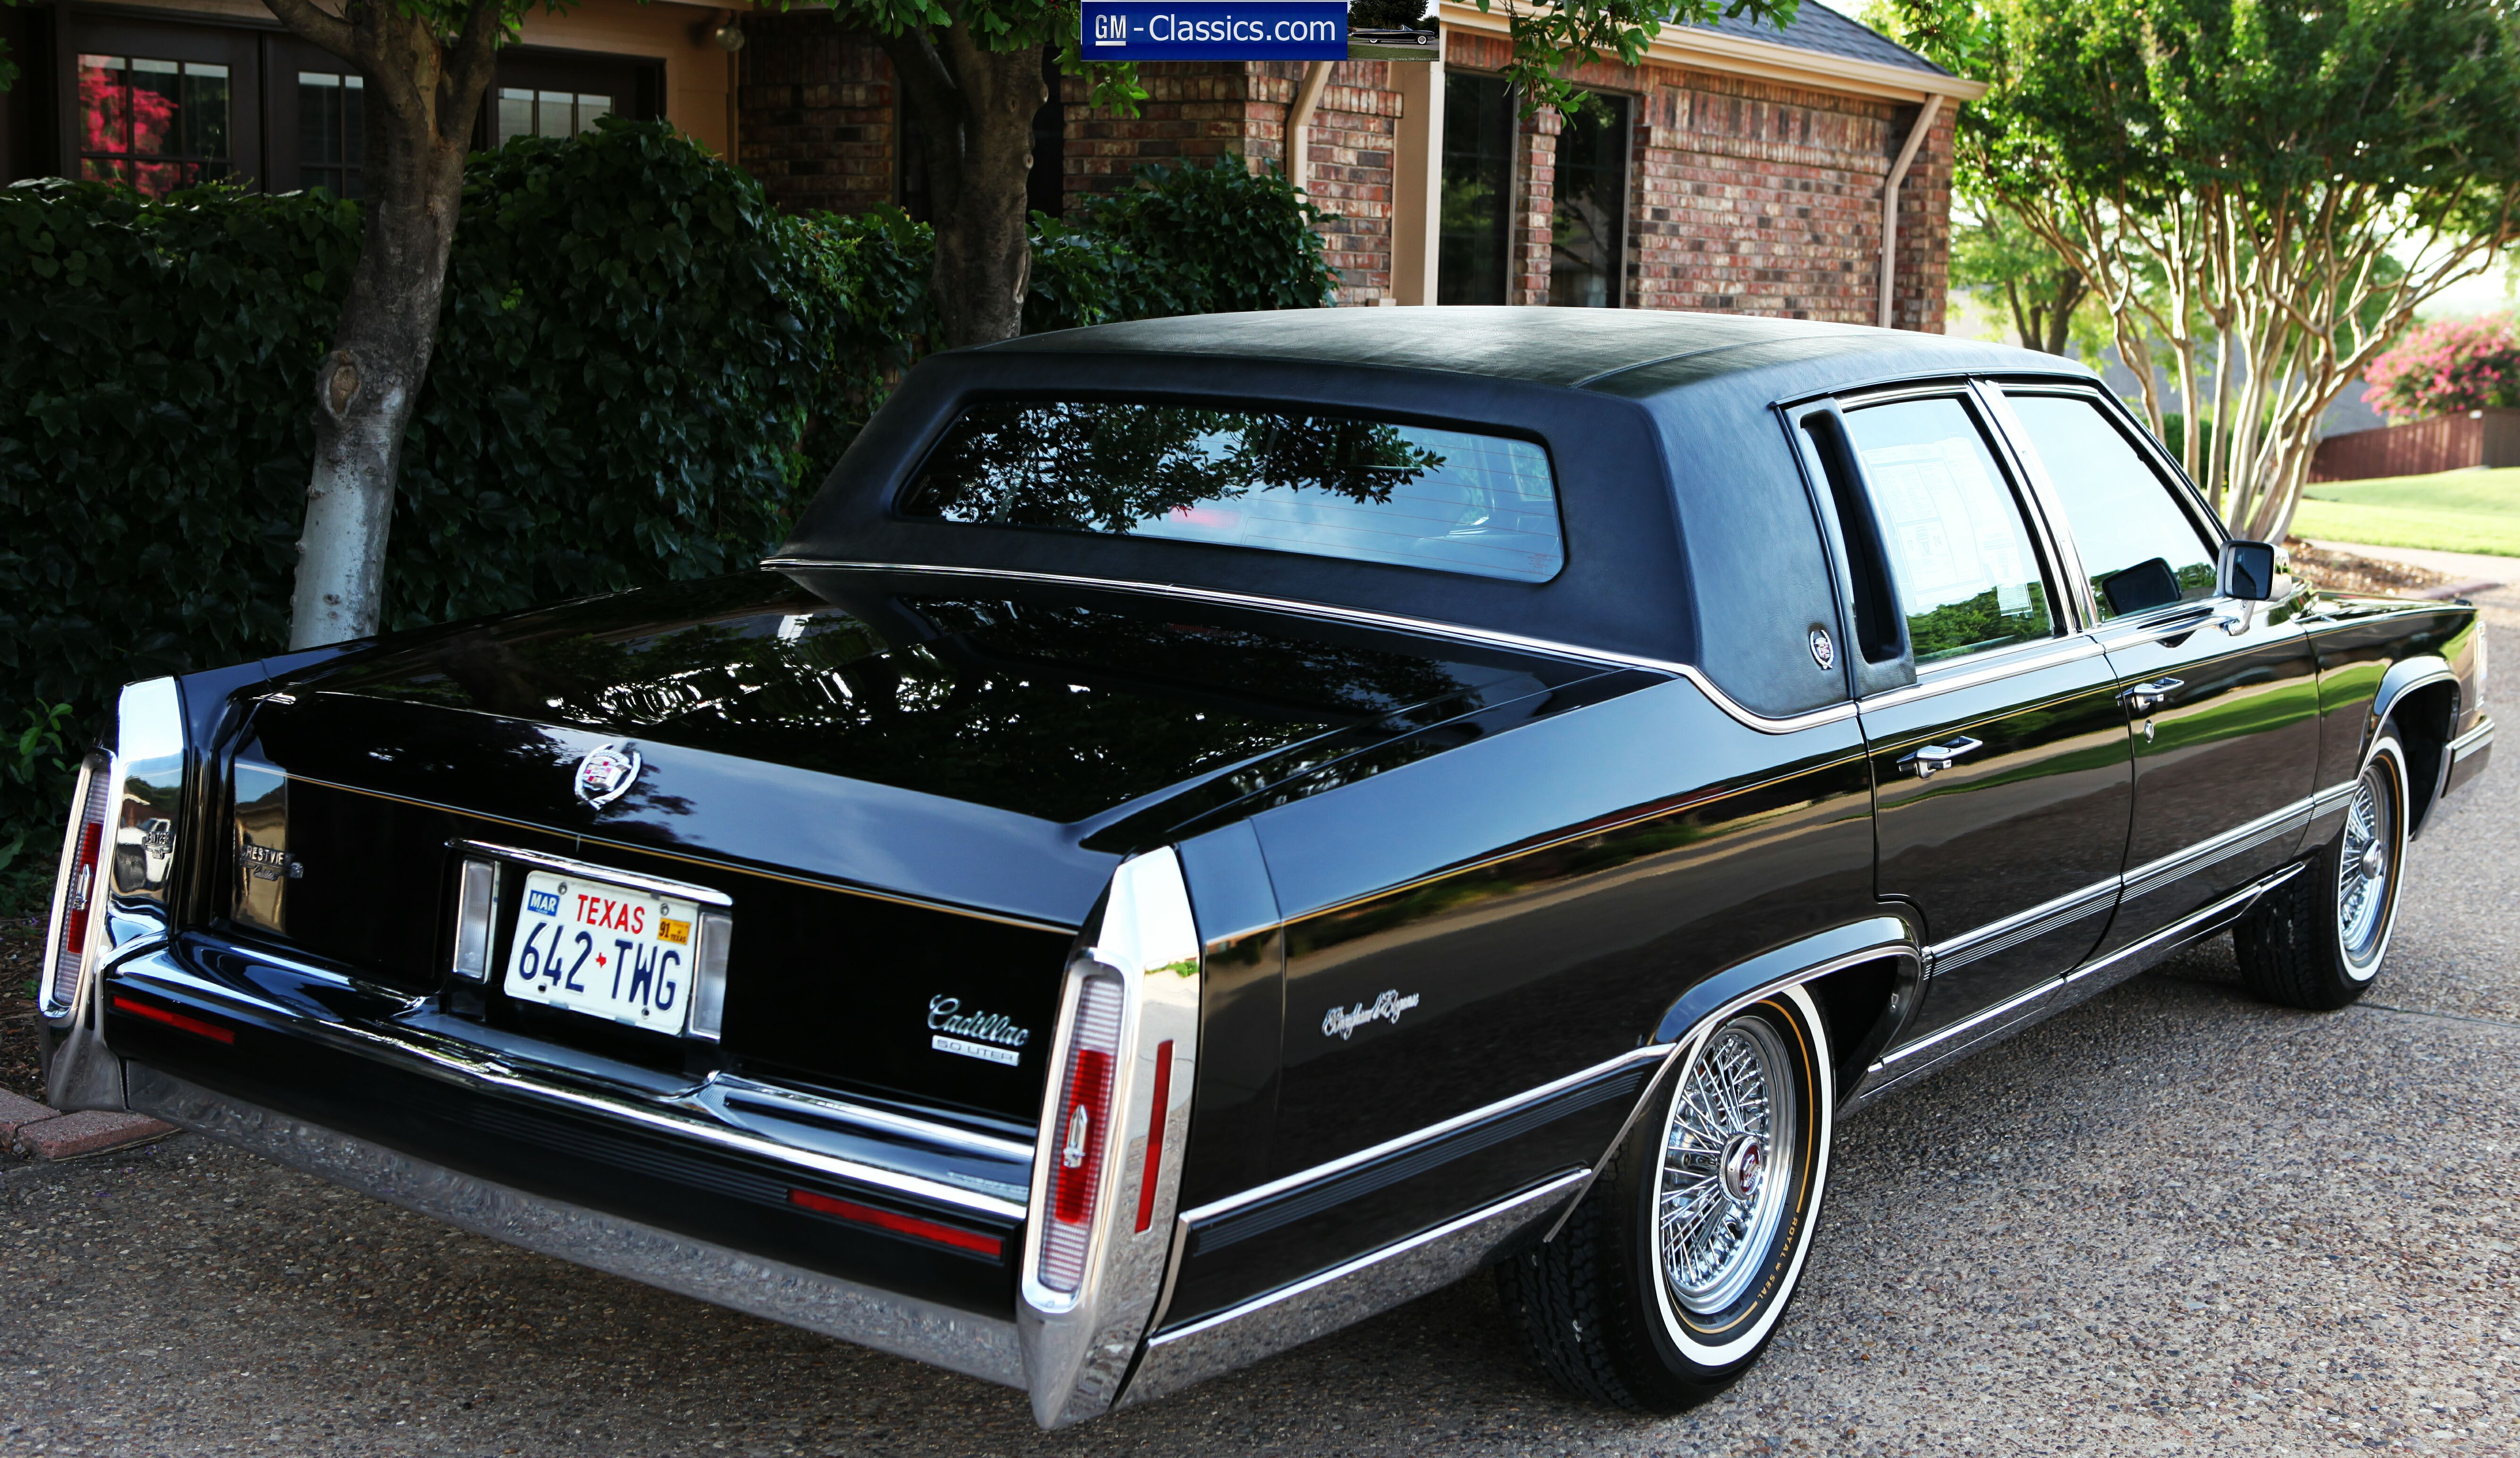 details about 1990 cadillac fleetwood brougham. Cars Review. Best American Auto & Cars Review